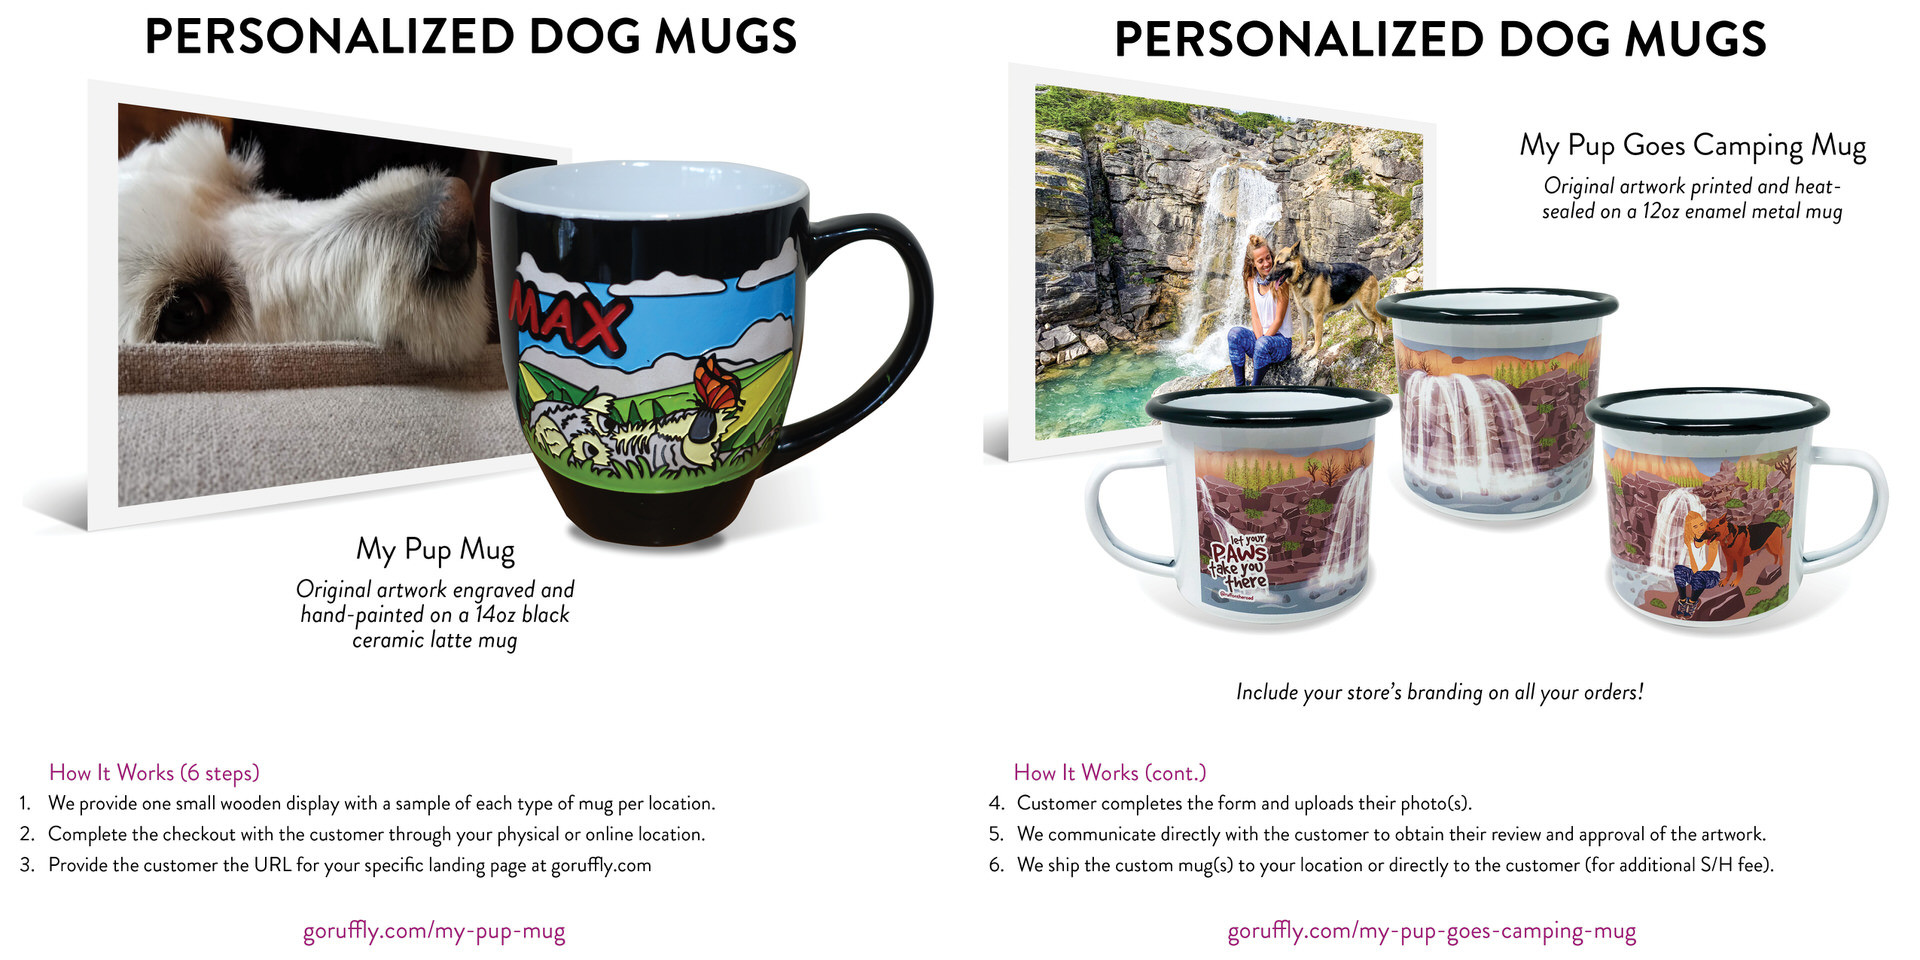 RUFFLY Lookbook – Pages 18 and 19 – Personalized My Pup Dog Mugs